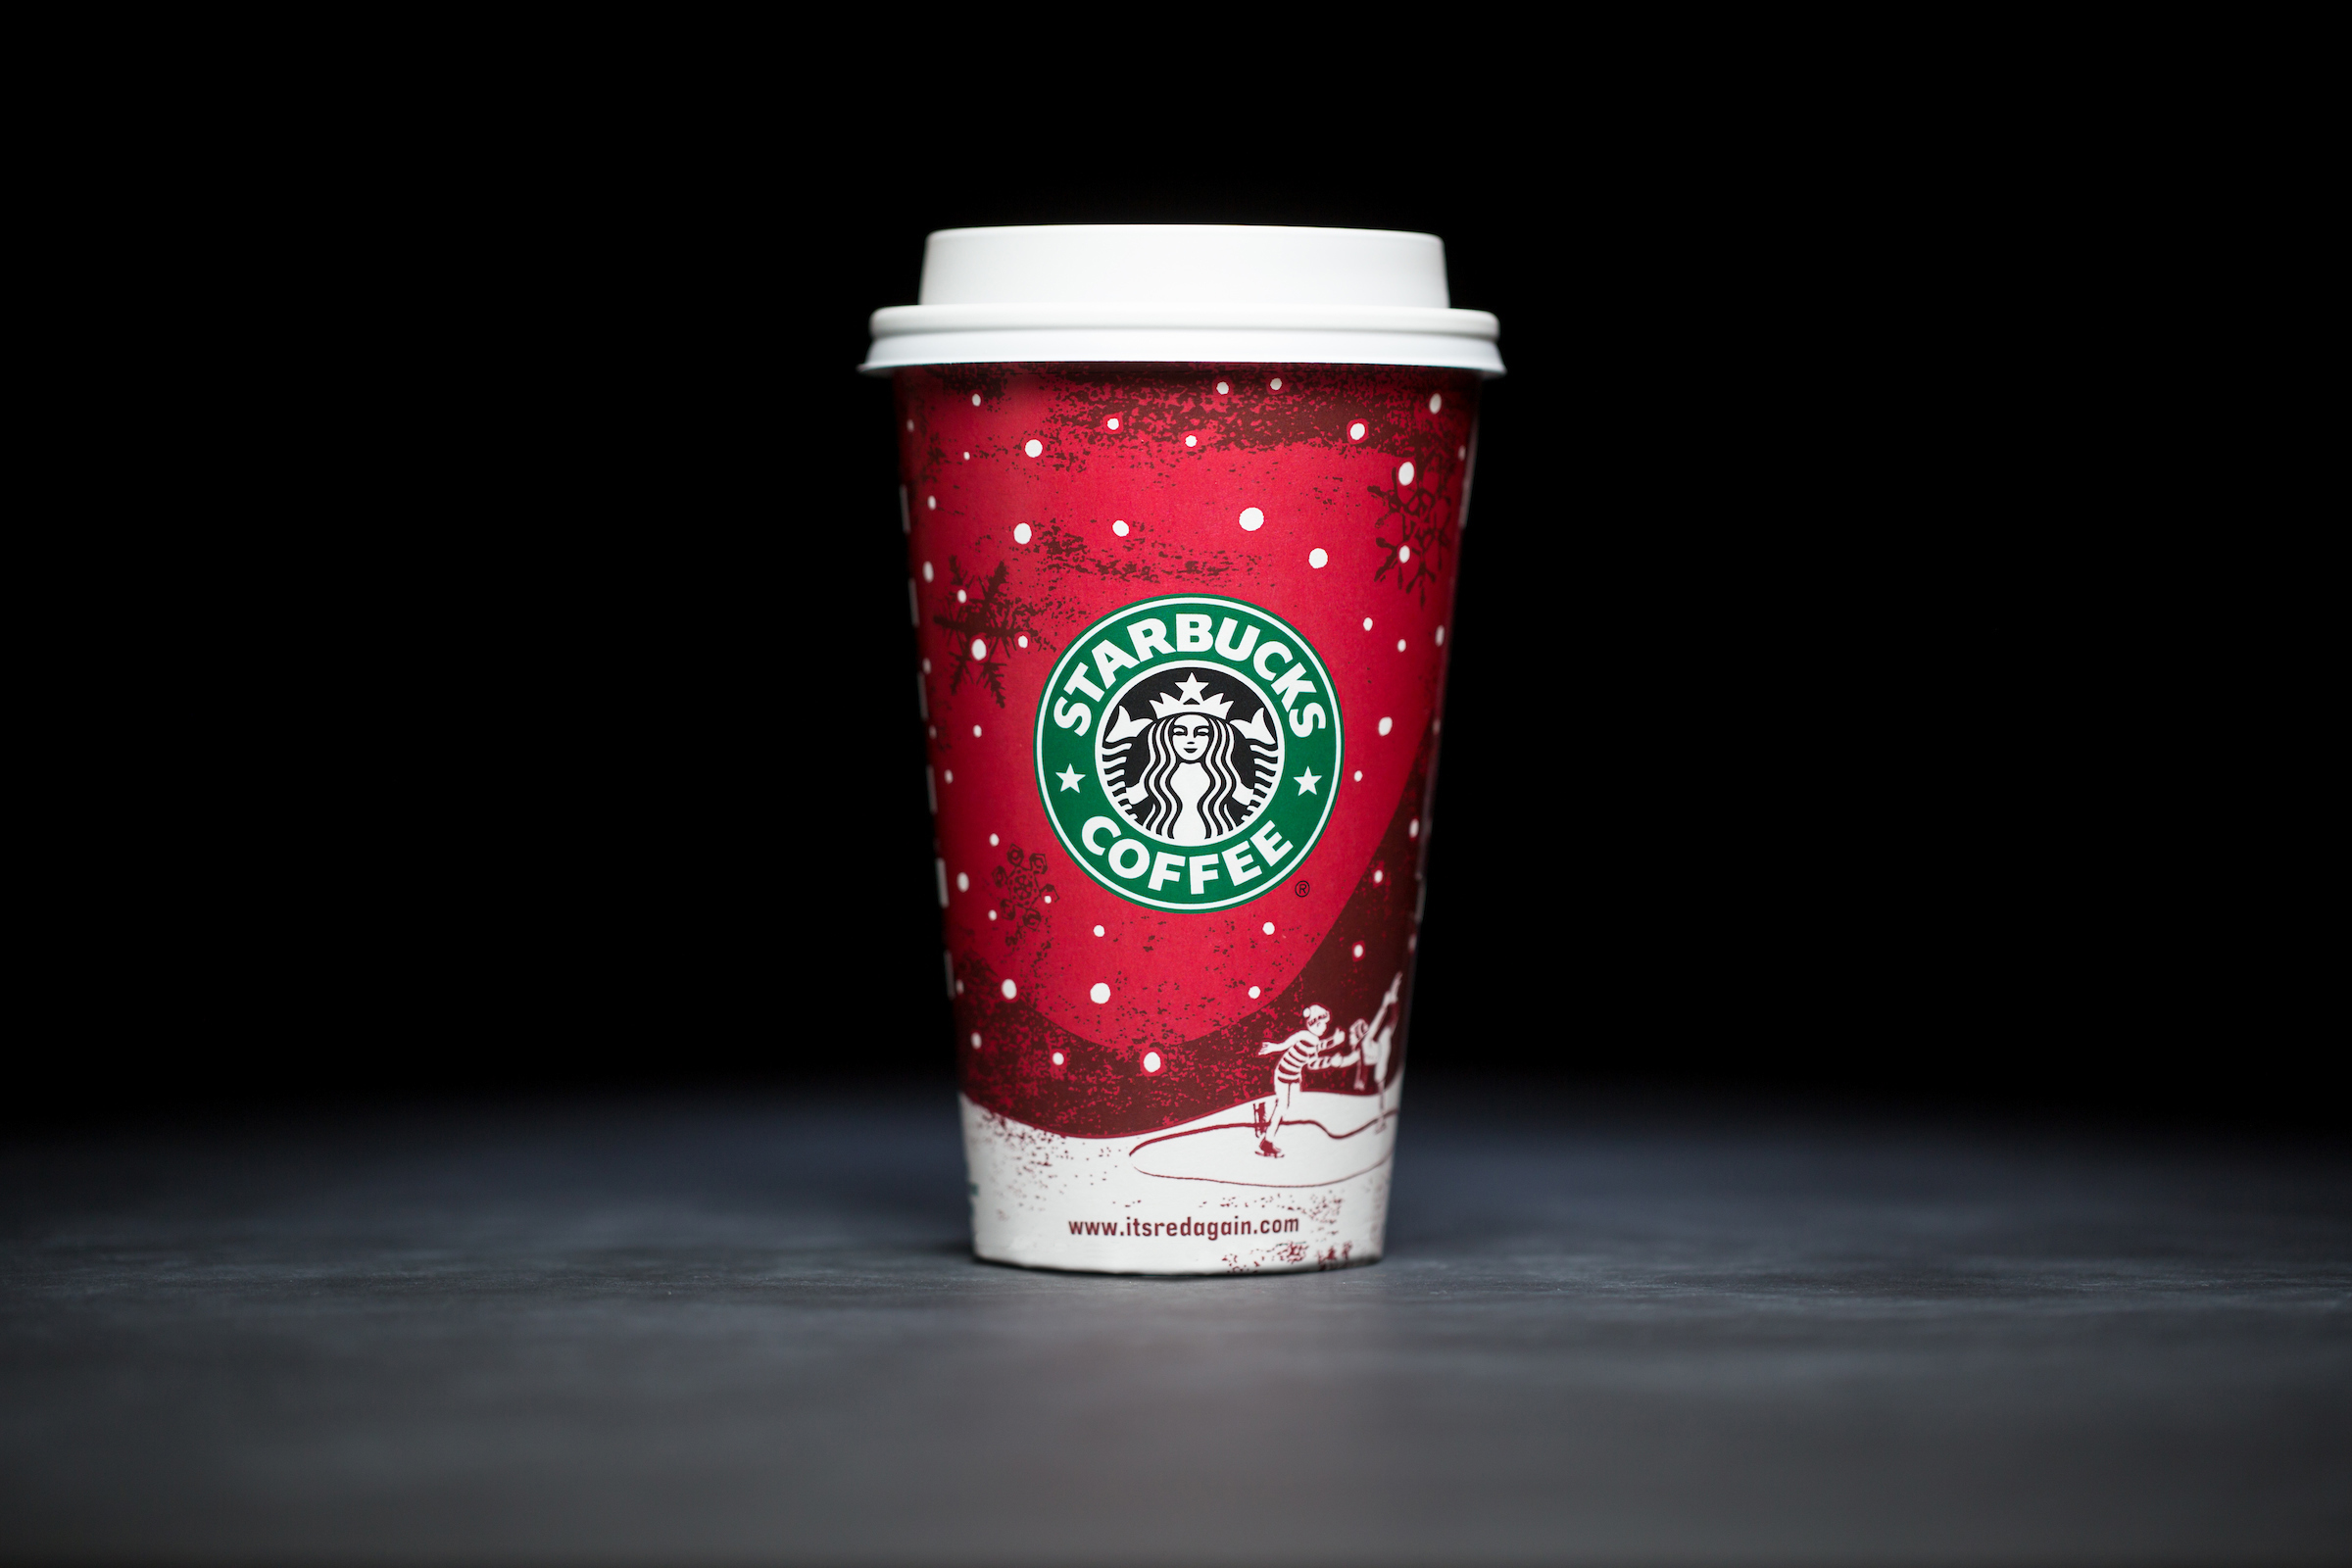 2007: For 20 years, Starbucks have released a range of holiday cup designs, most of them based around their world famous red cup. It's not easy to find the very first Starbucks holiday cups, which made their debut in stores in 1997. Few were saved, and electronic design files were lost in an earthquake in 2001. Even an Internet search is unyielding, with the cups having made their arrival long before the first selfie. But, we have them here! Click on for a photos of all 20 holidays cup designs. (Image: Joshua Trujillo/Cover Images)